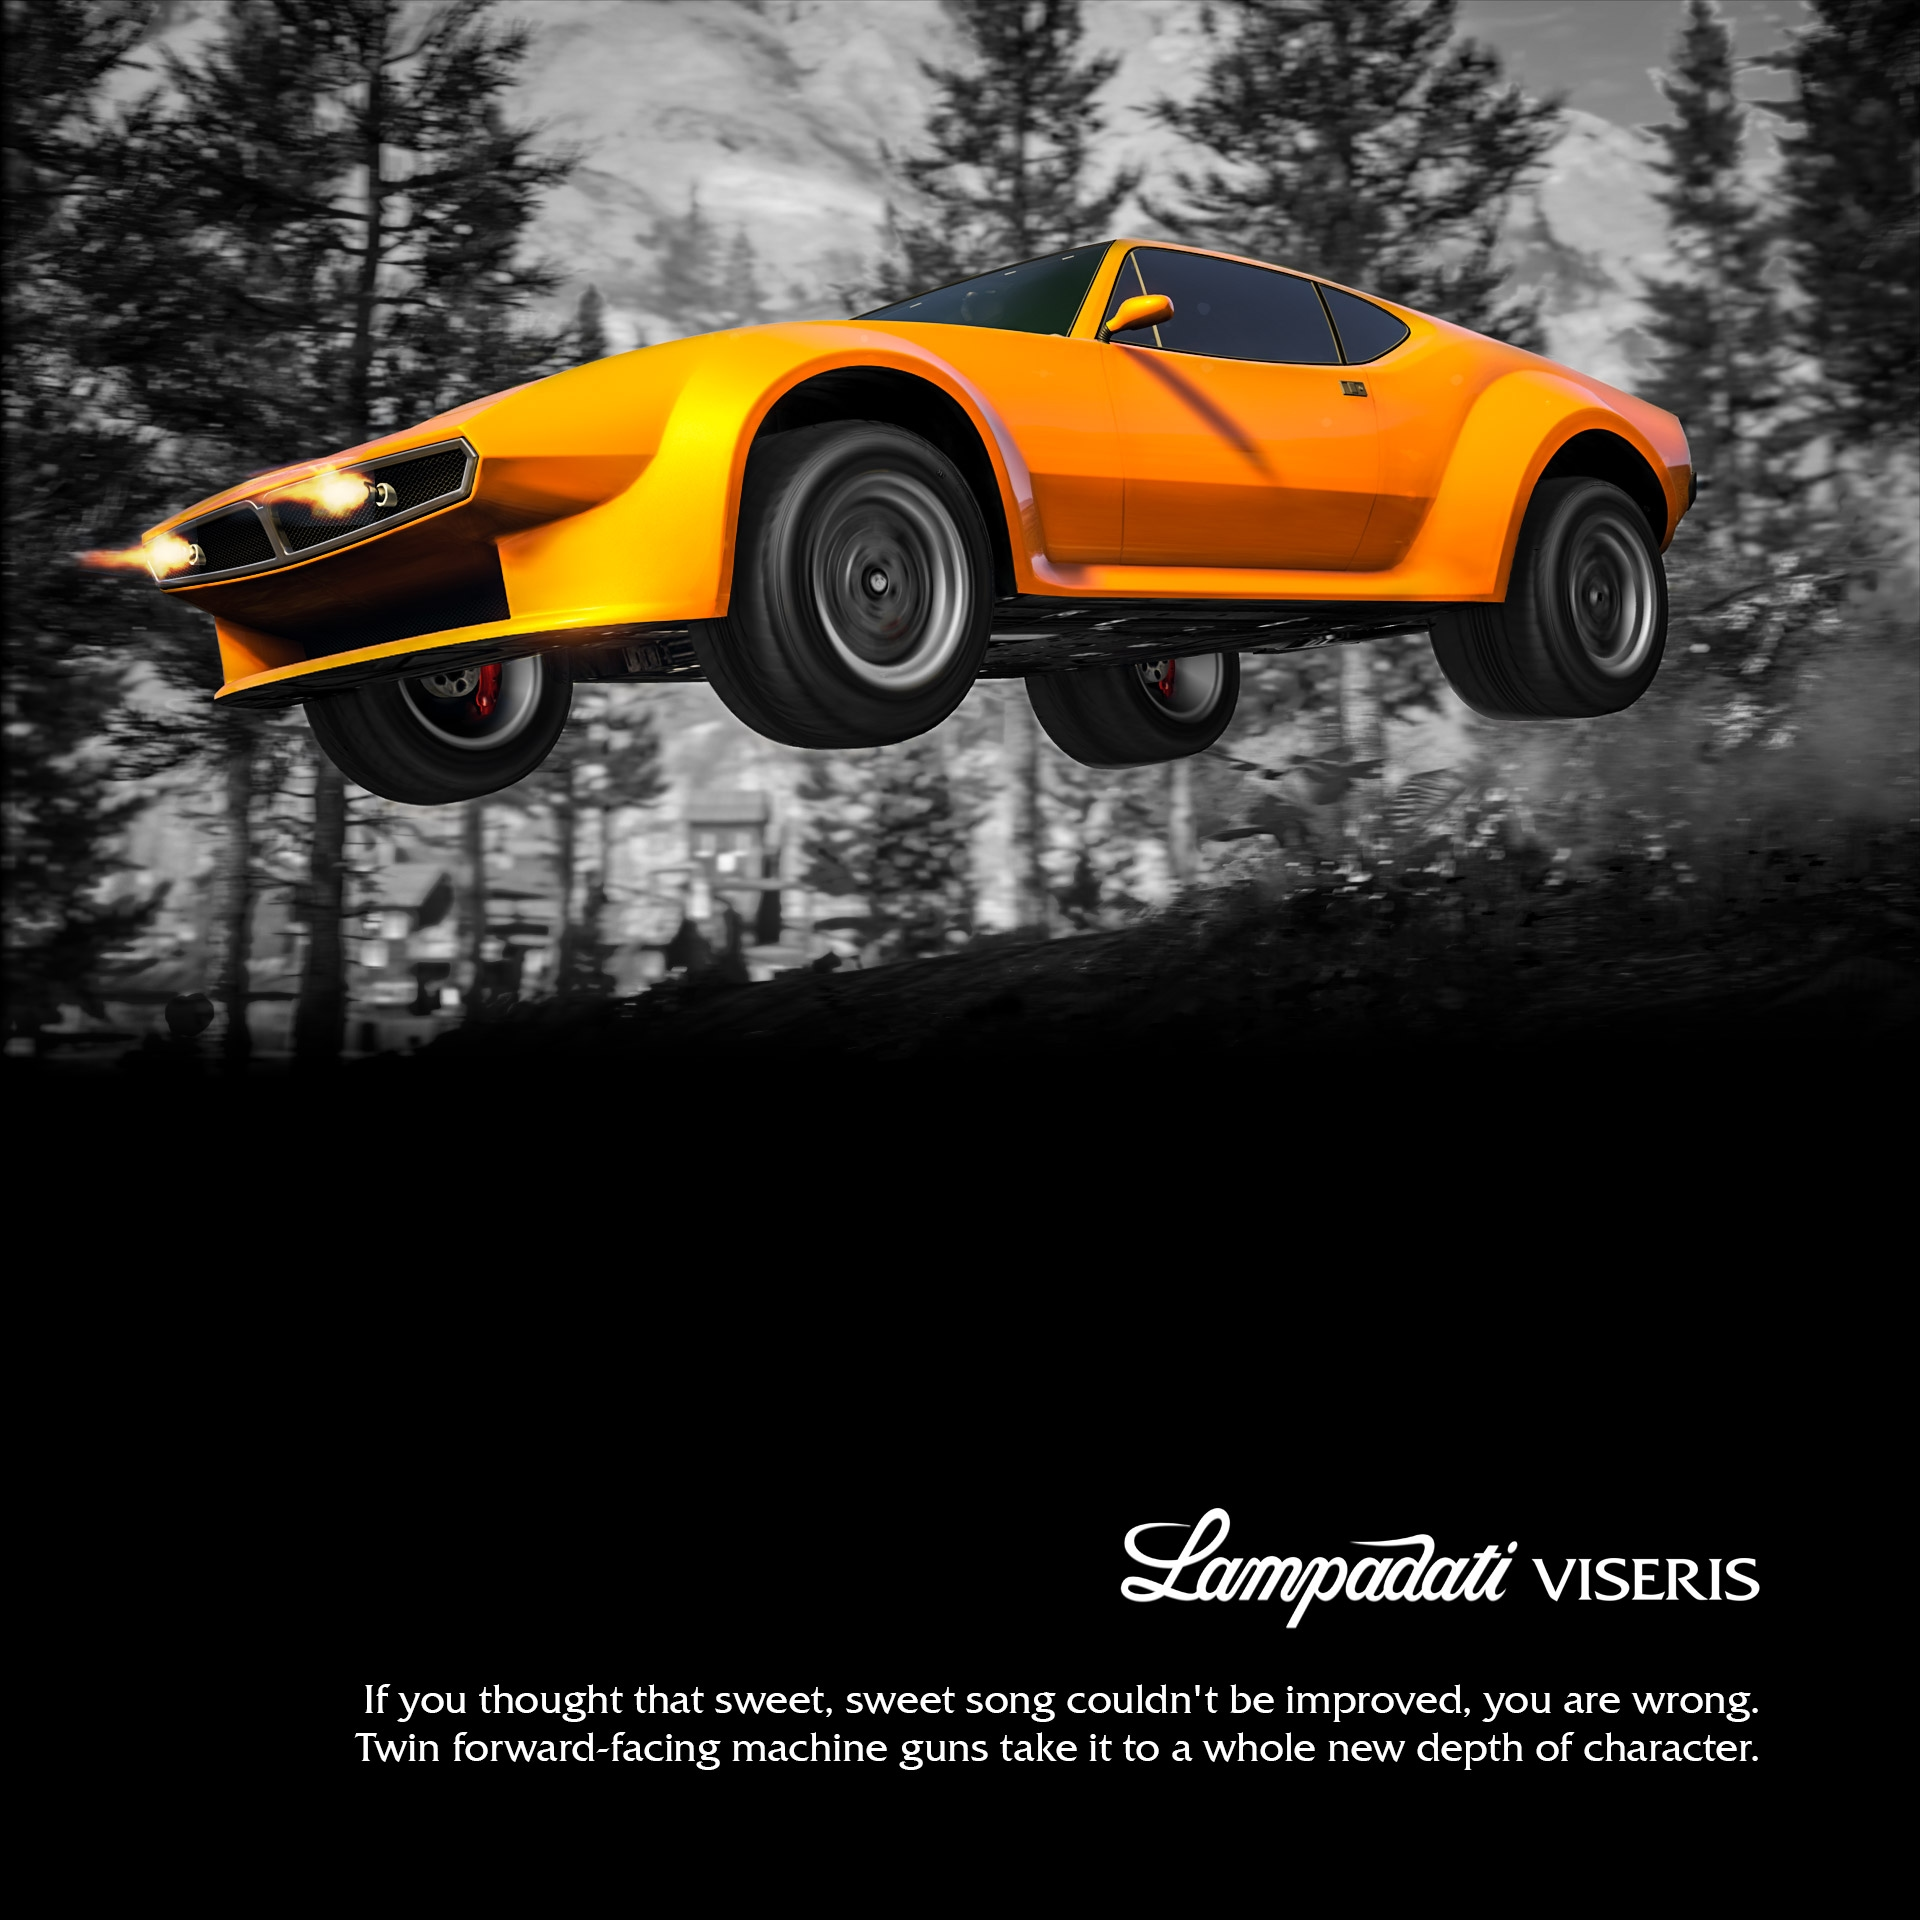 GTA Online: The Lampadati Viseris out now